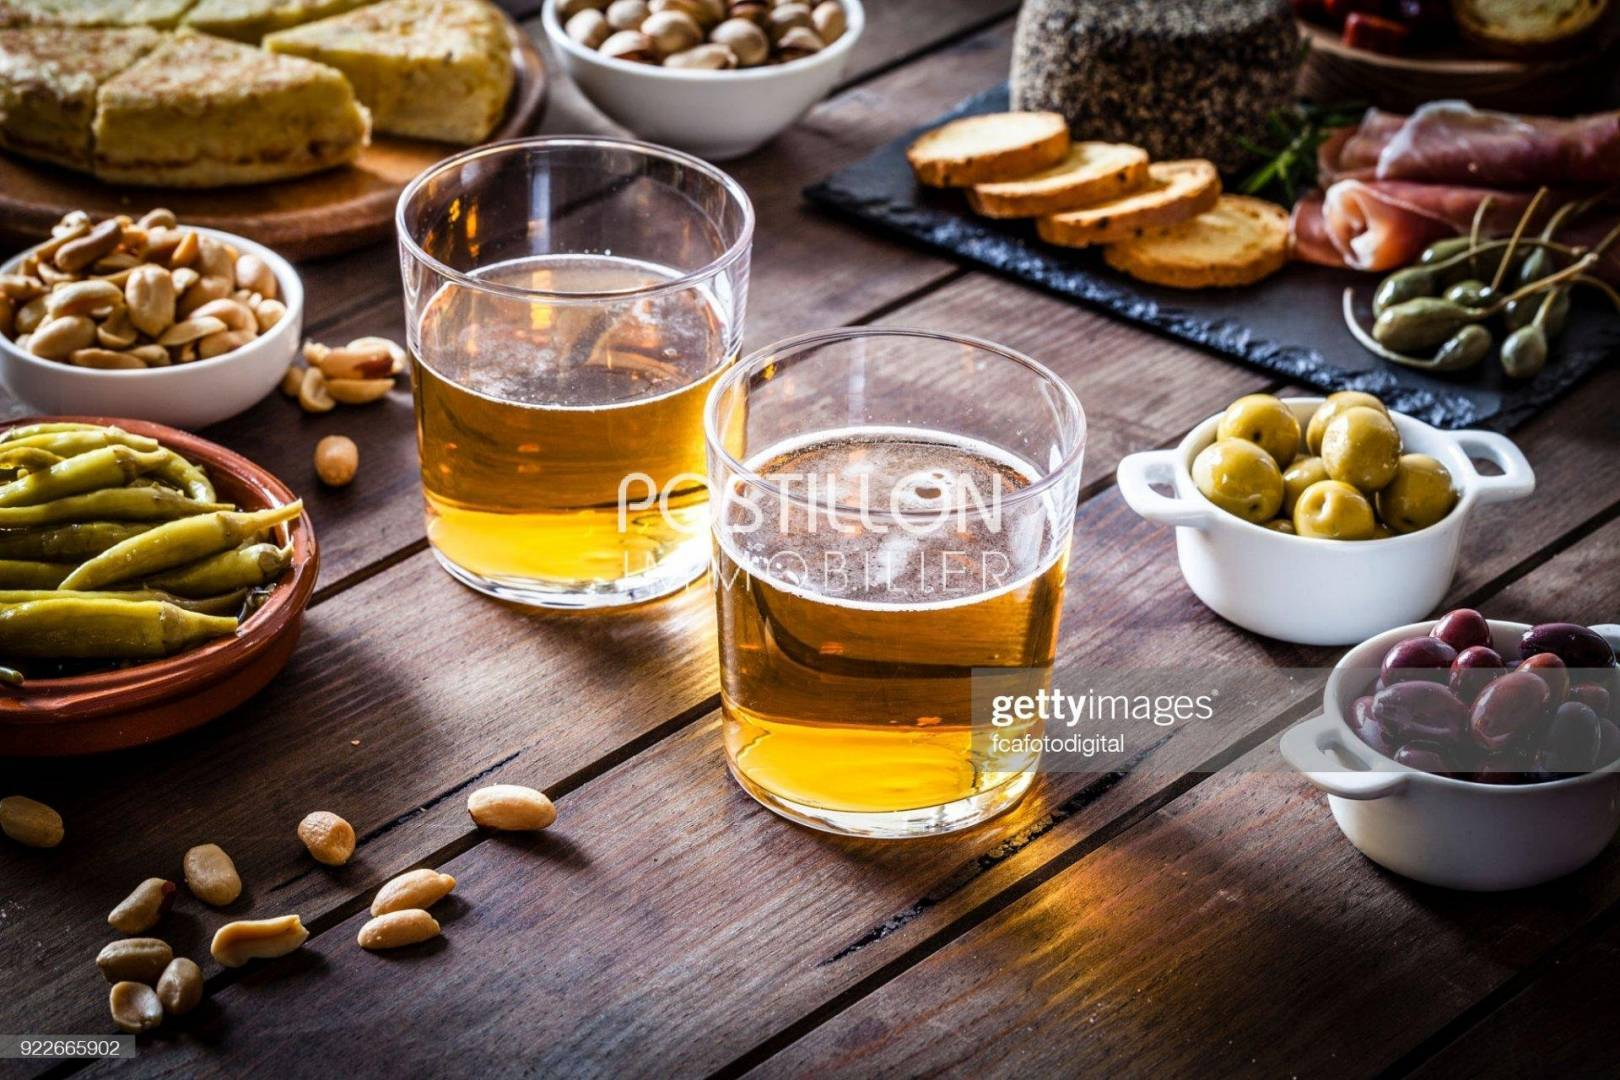 Two beer glasses shot on rustic wooden table with some tapas and appetizer. The beer glasses are at the center of an horizontal frame while some tapas are around them. The composition includes spanish